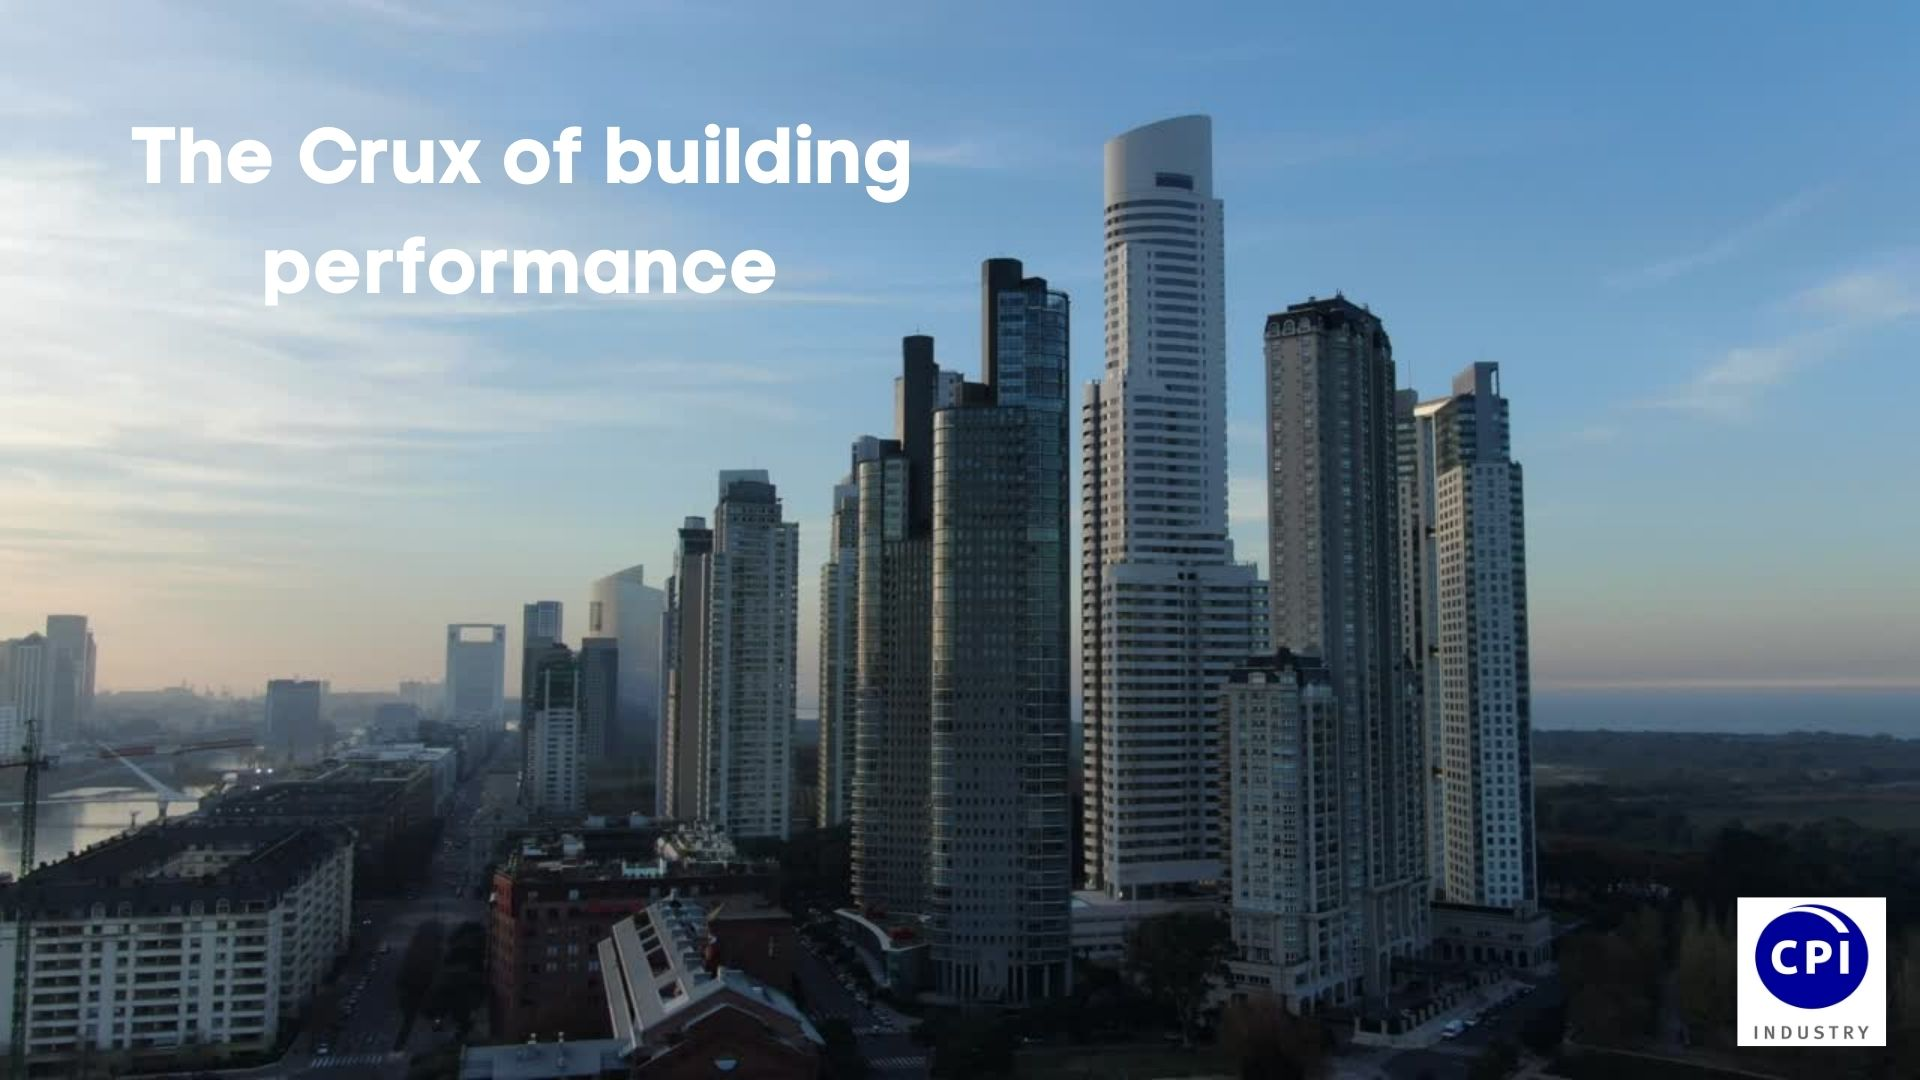 The Crux of building performance